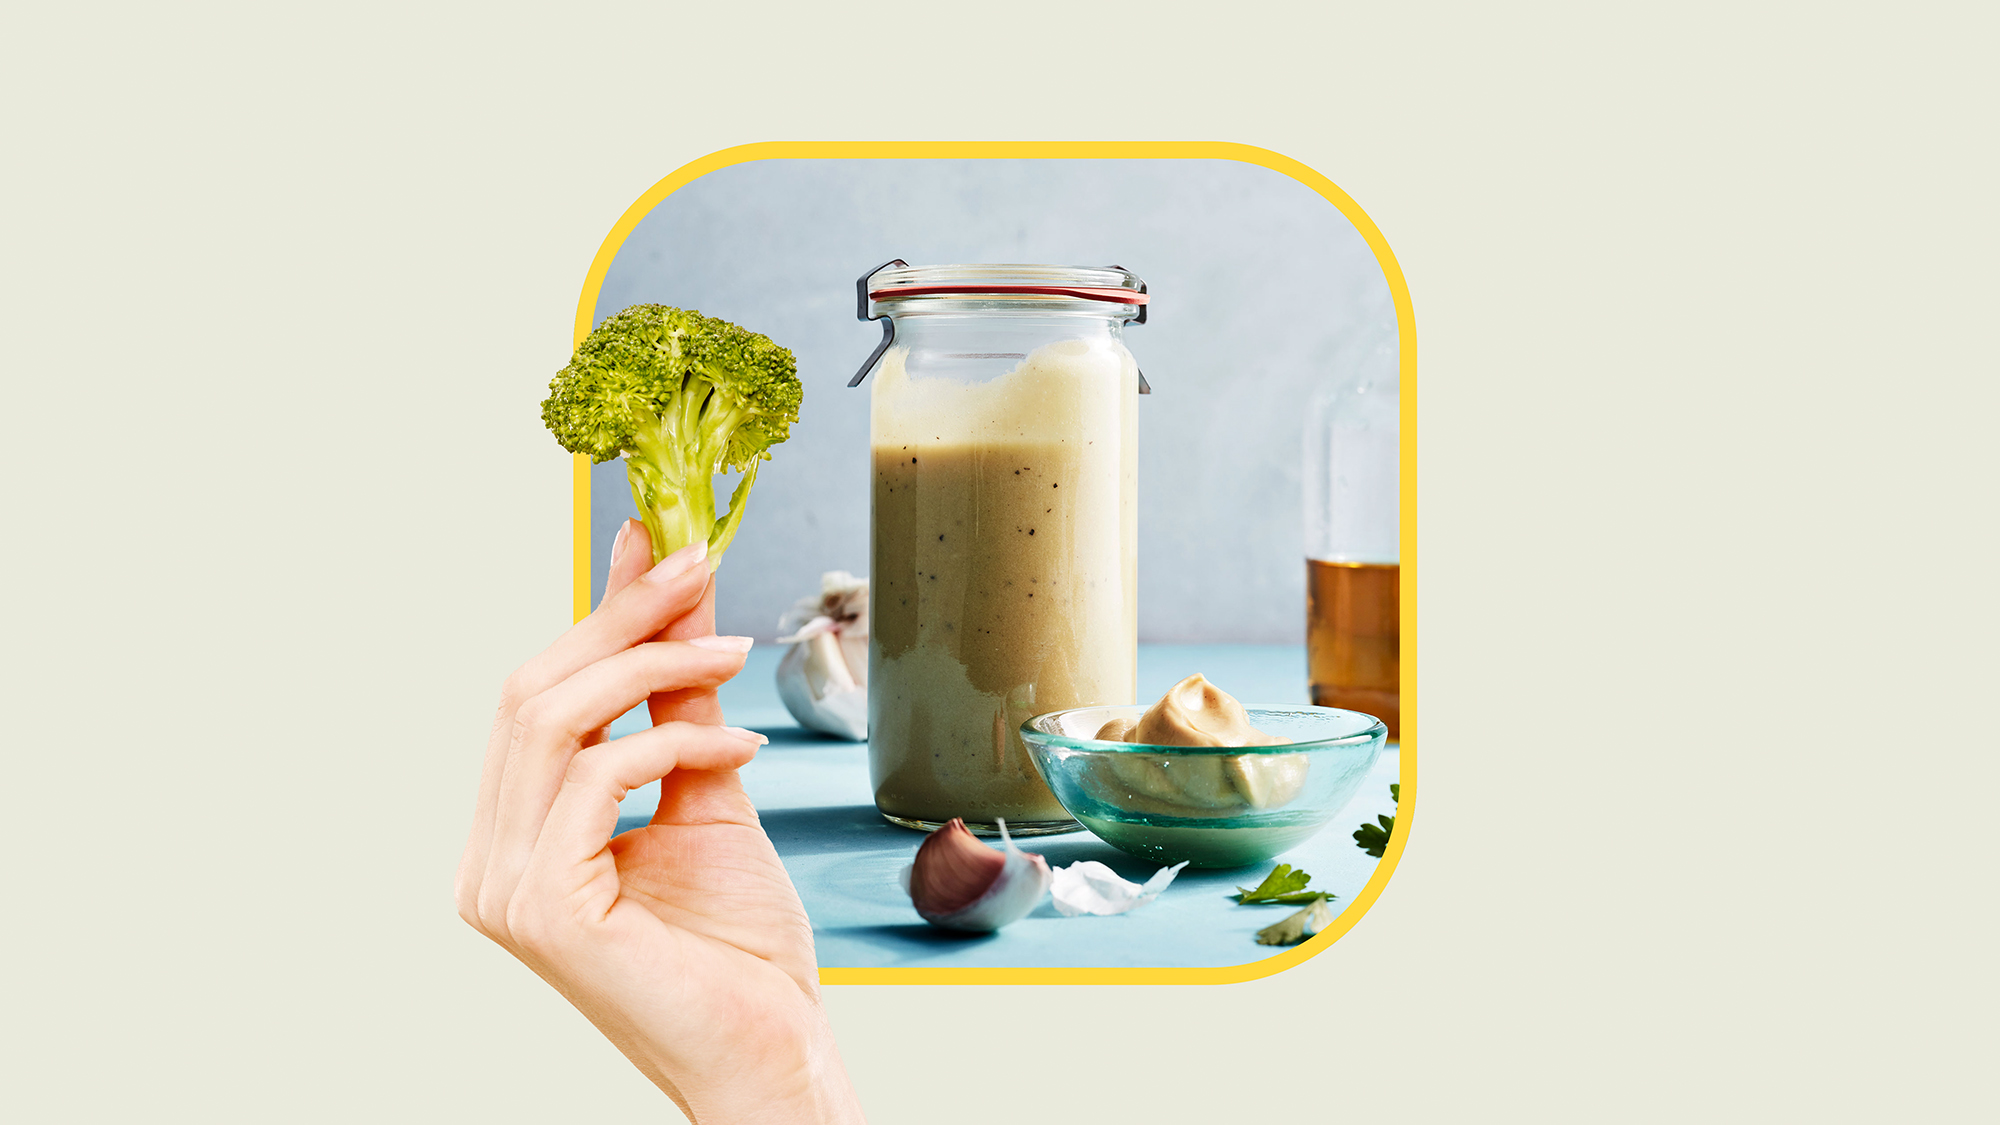 a picture of salad dressing with a yellow boarder with a hand holding broccoli in front of it